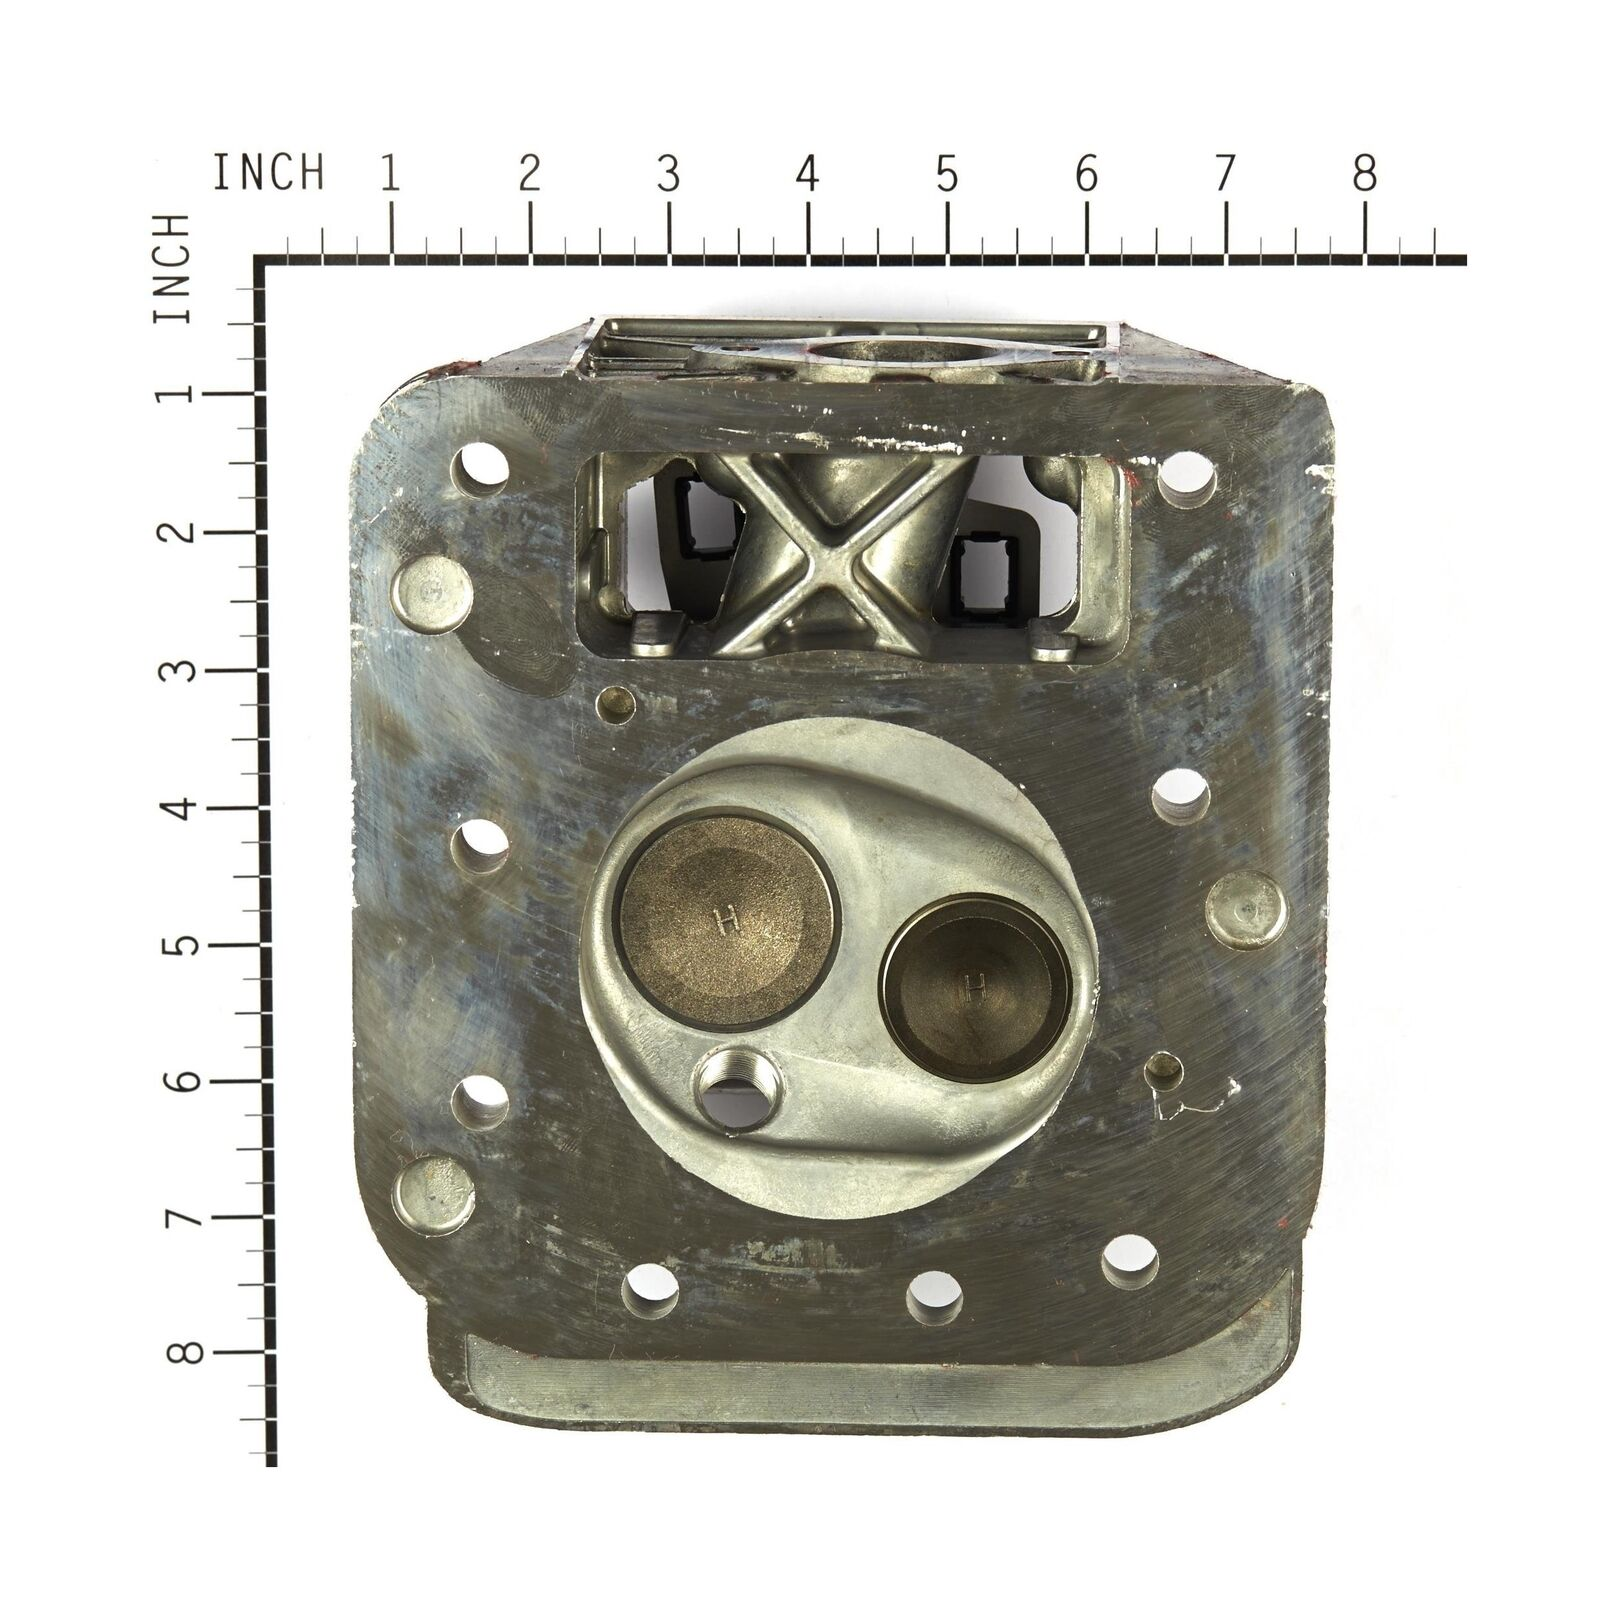 Briggs /& Stratton 796026 Cylinder Head Replaces # 794123 796005 794223 793990